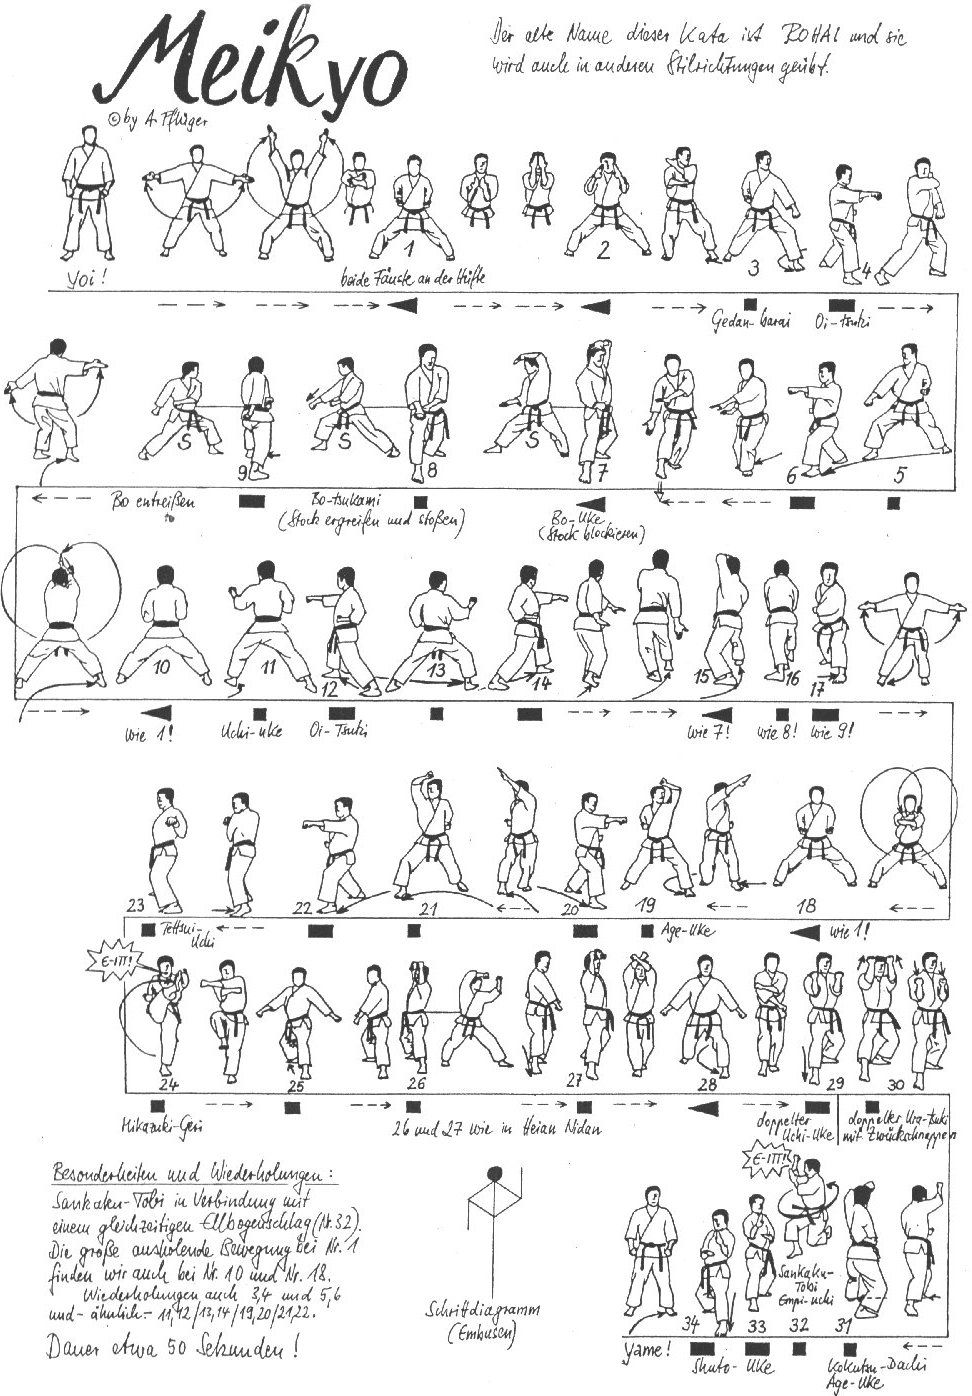 shorin ryu kata diagrams shotokan karate katas shorin ryu karateshorin ryu kata diagrams shotokan karate katas [ 972 x 1396 Pixel ]